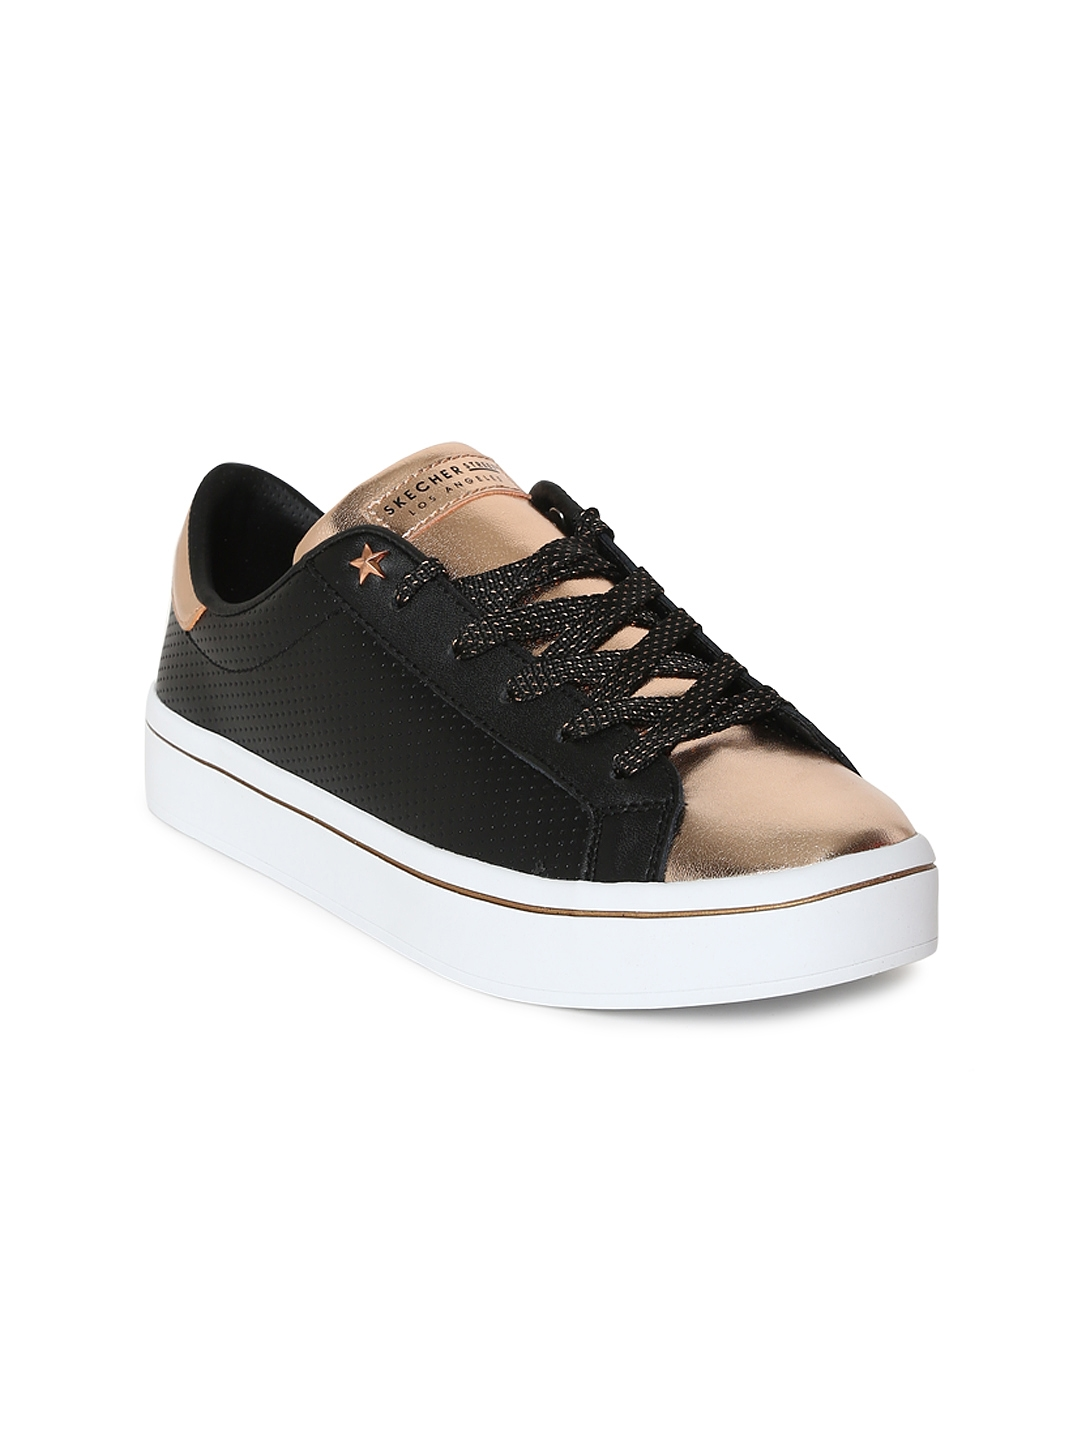 4a8c8b1c9bb0 Buy Skechers Women NEW YORK NIGHTS Black Sneakers - Casual Shoes for ...